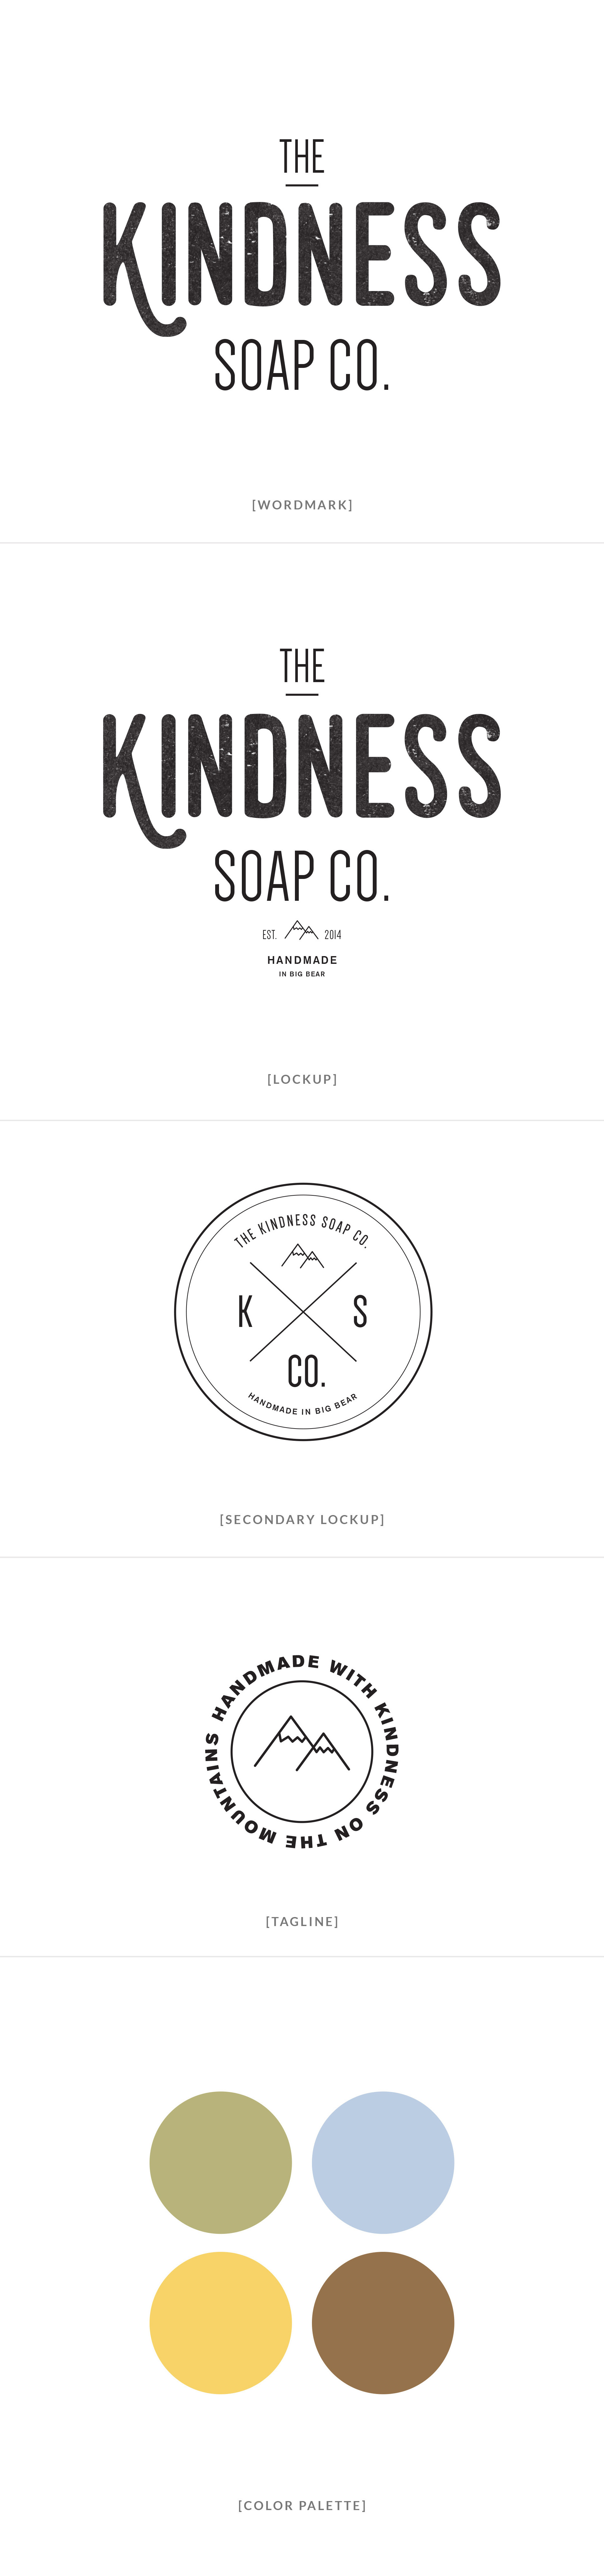 Kindness_Soap_Co_branding_InbetweenStudio